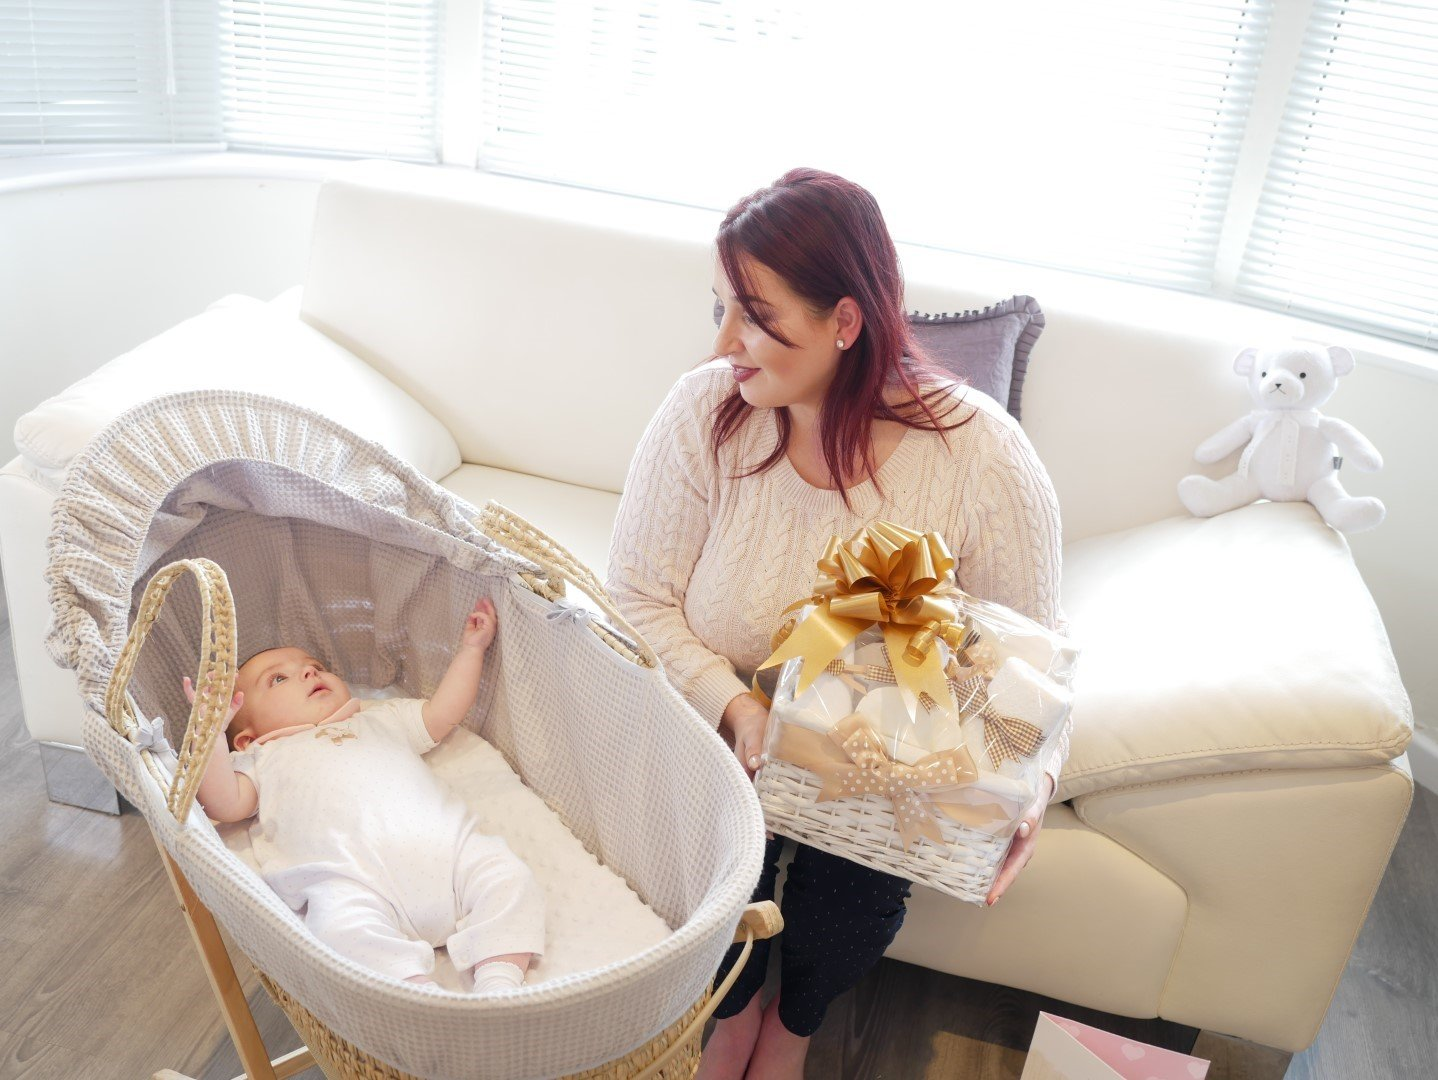 Zebra Luxury Unisex Newborn Twin Baby Shower Gifts Hampers⼁New Born Neutral Boy and Girl Gift Hamper Baskets for Twins⼁Nappy Cake Basket Presents Sets Boys Girls⼁Mum Maternity Leave Set Nappie Cakes